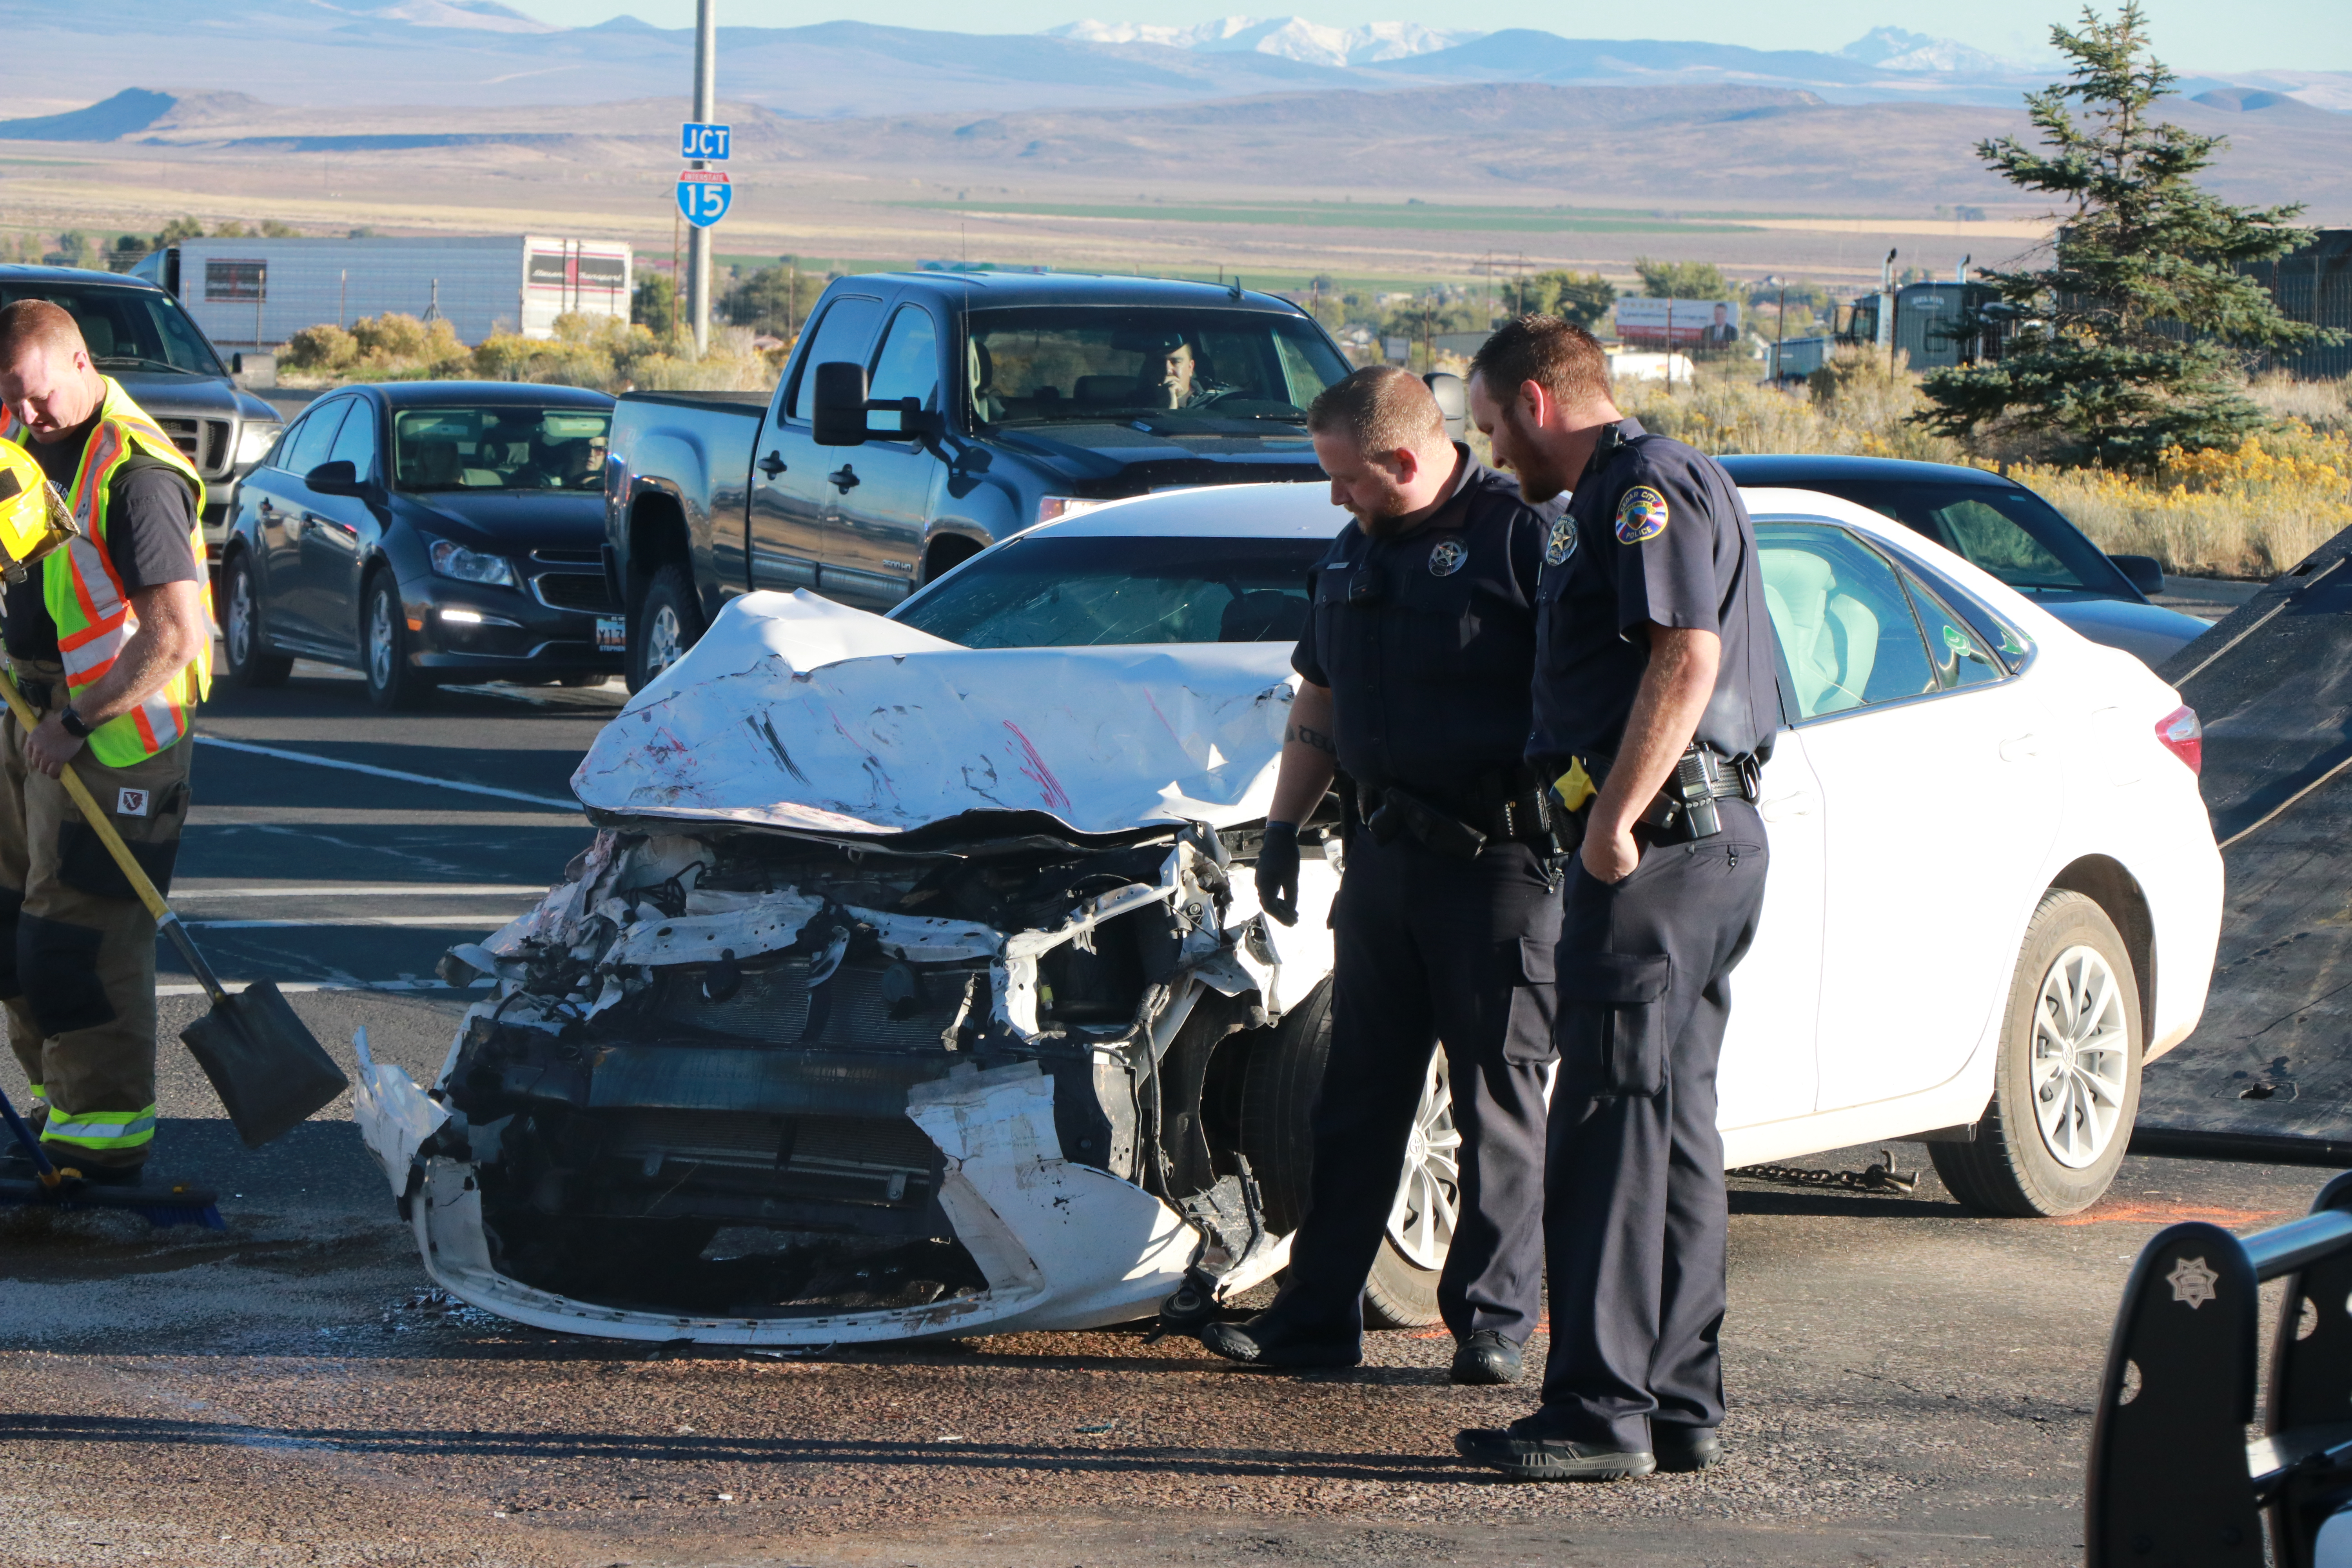 2 vehicles collide in cedar city intersection with enough force to